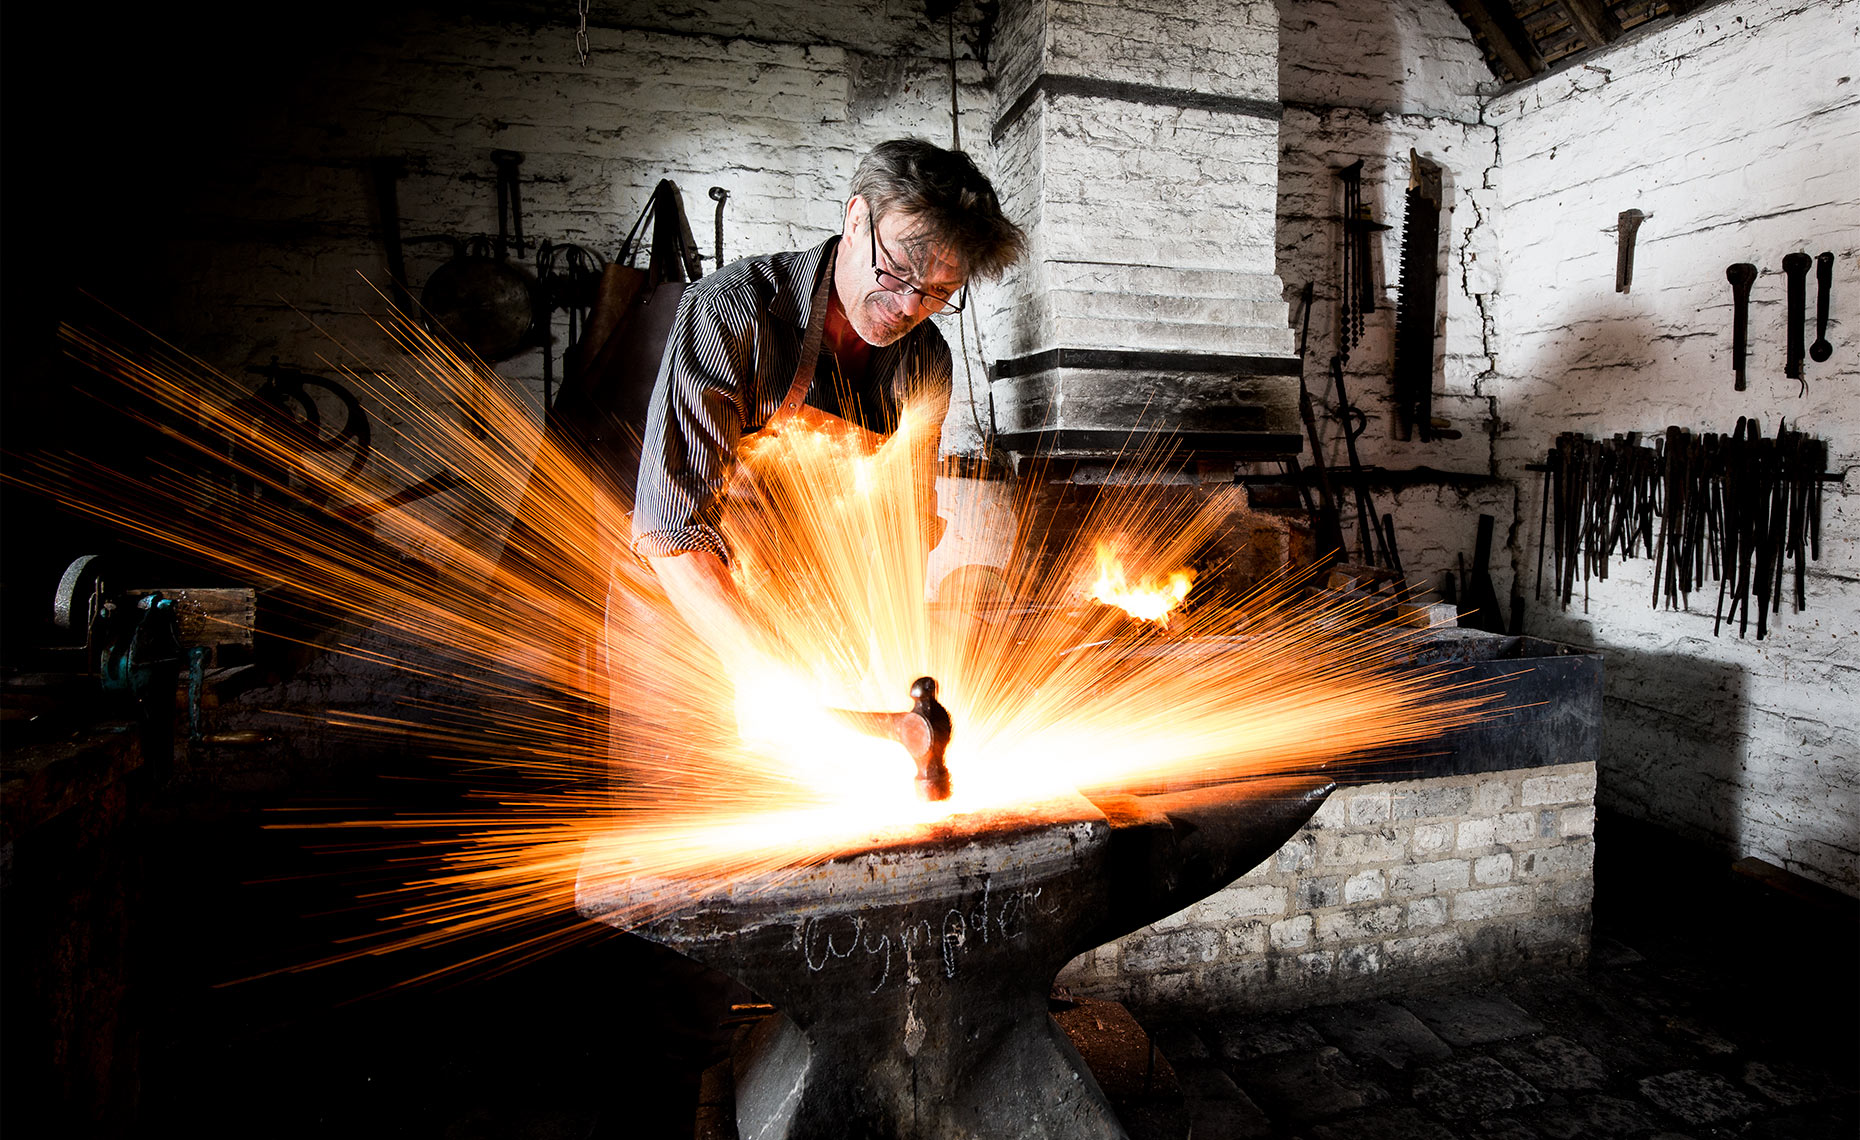 Simon Damant works at the forge on the Wimpole Estate, Cambridgeshire.